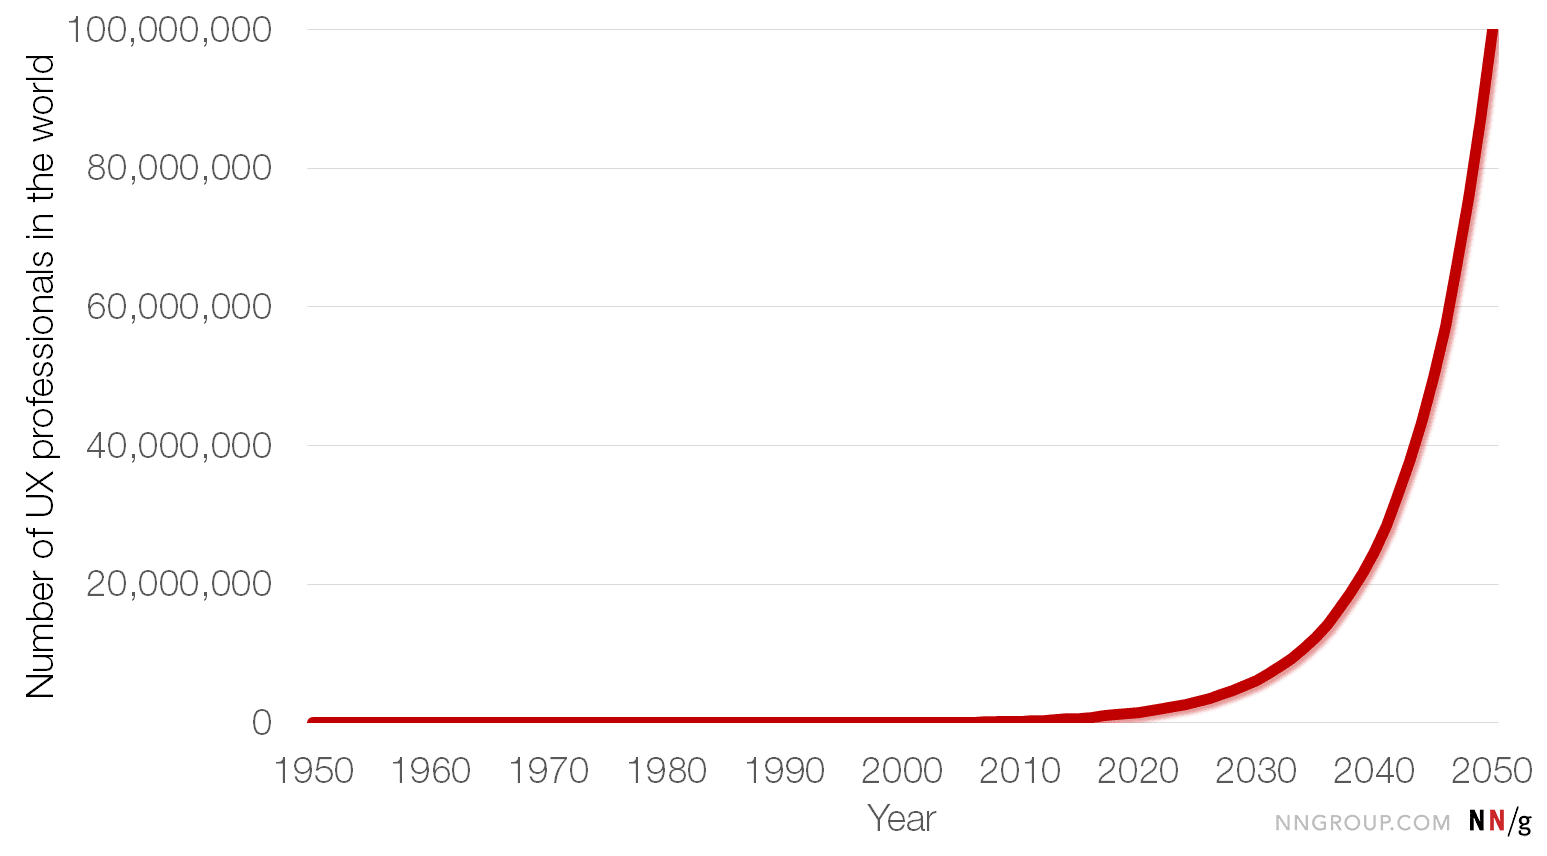 UX professionals in the world 1950-2050